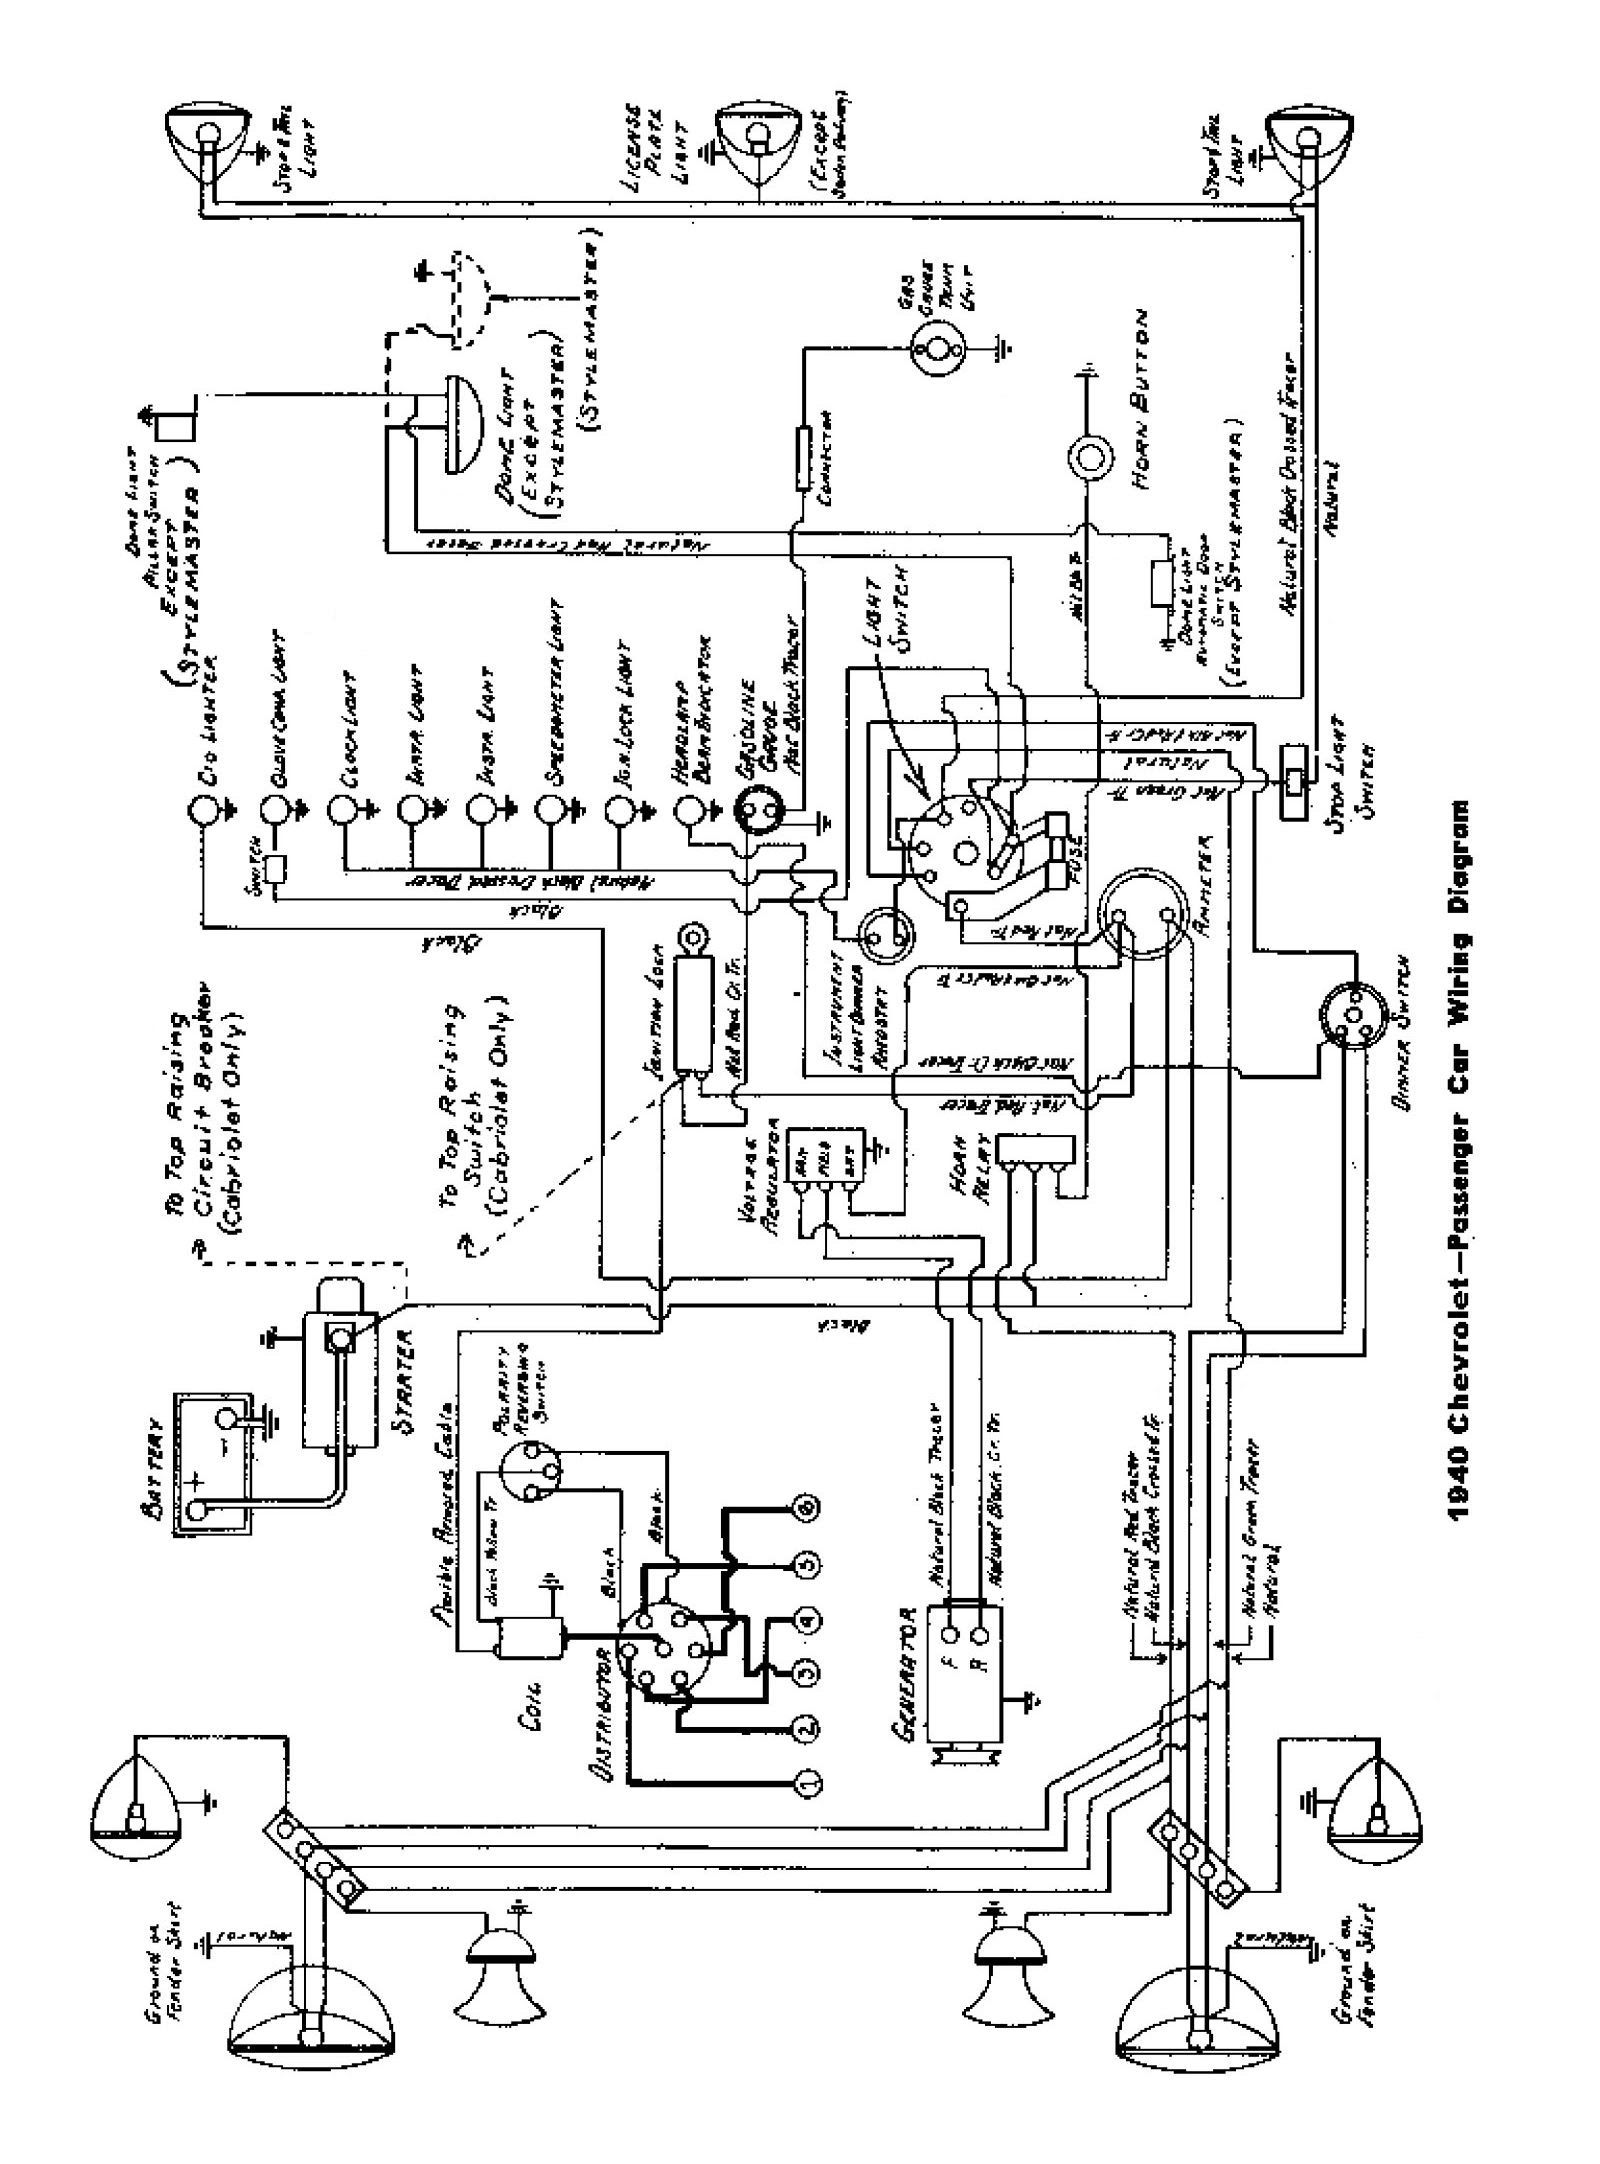 77 Chevy Truck Ignition Switch Wire Diagram - Wiring Diagram NetworksWiring Diagram Networks - blogger